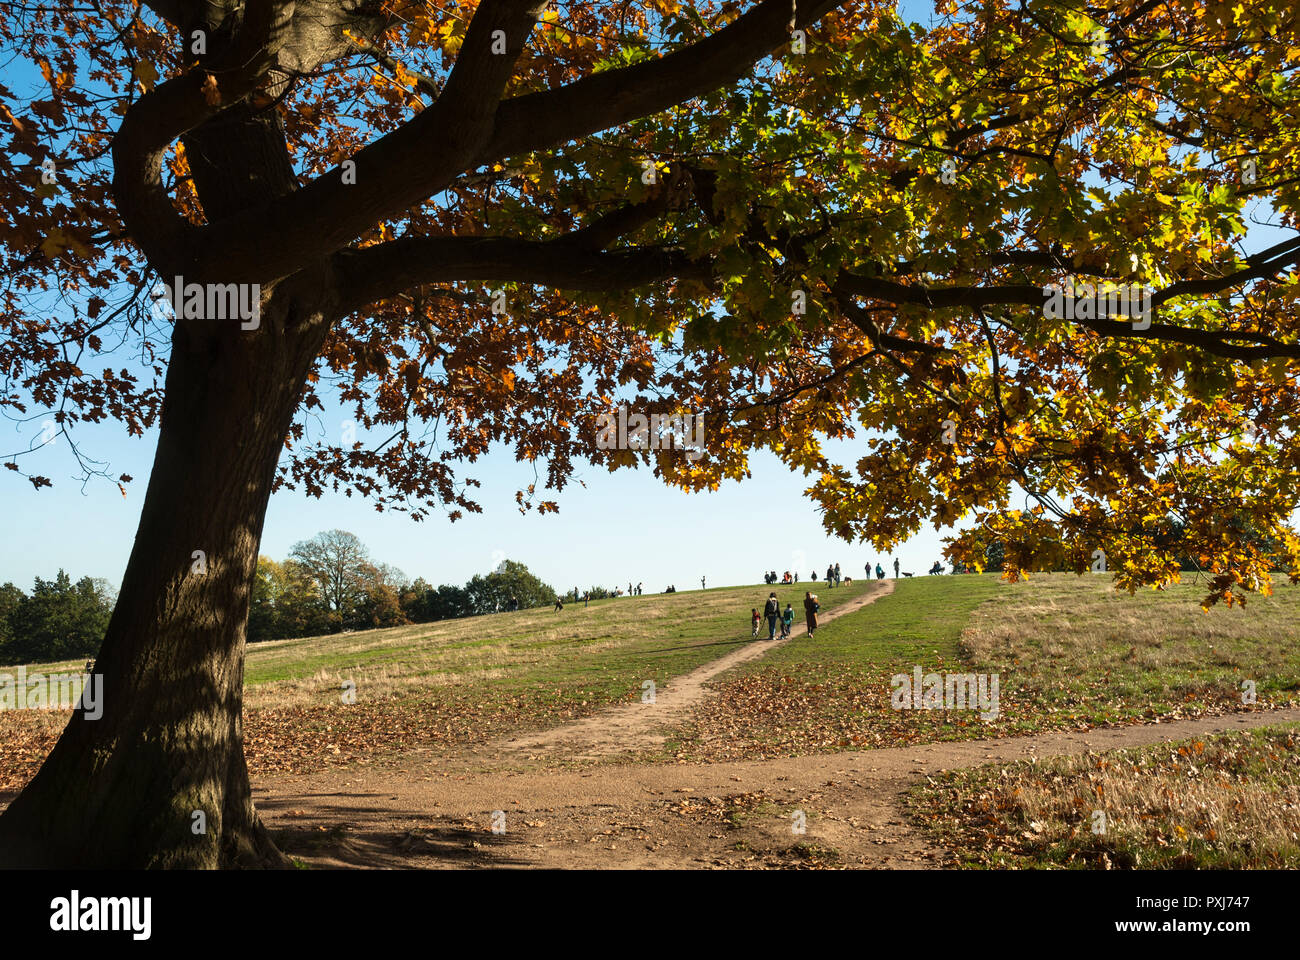 Beautiful golden autumnal colours of an oak tree in foreground with people walking over Parliament Hill in the distance, on a sunny afternoon. - Stock Image